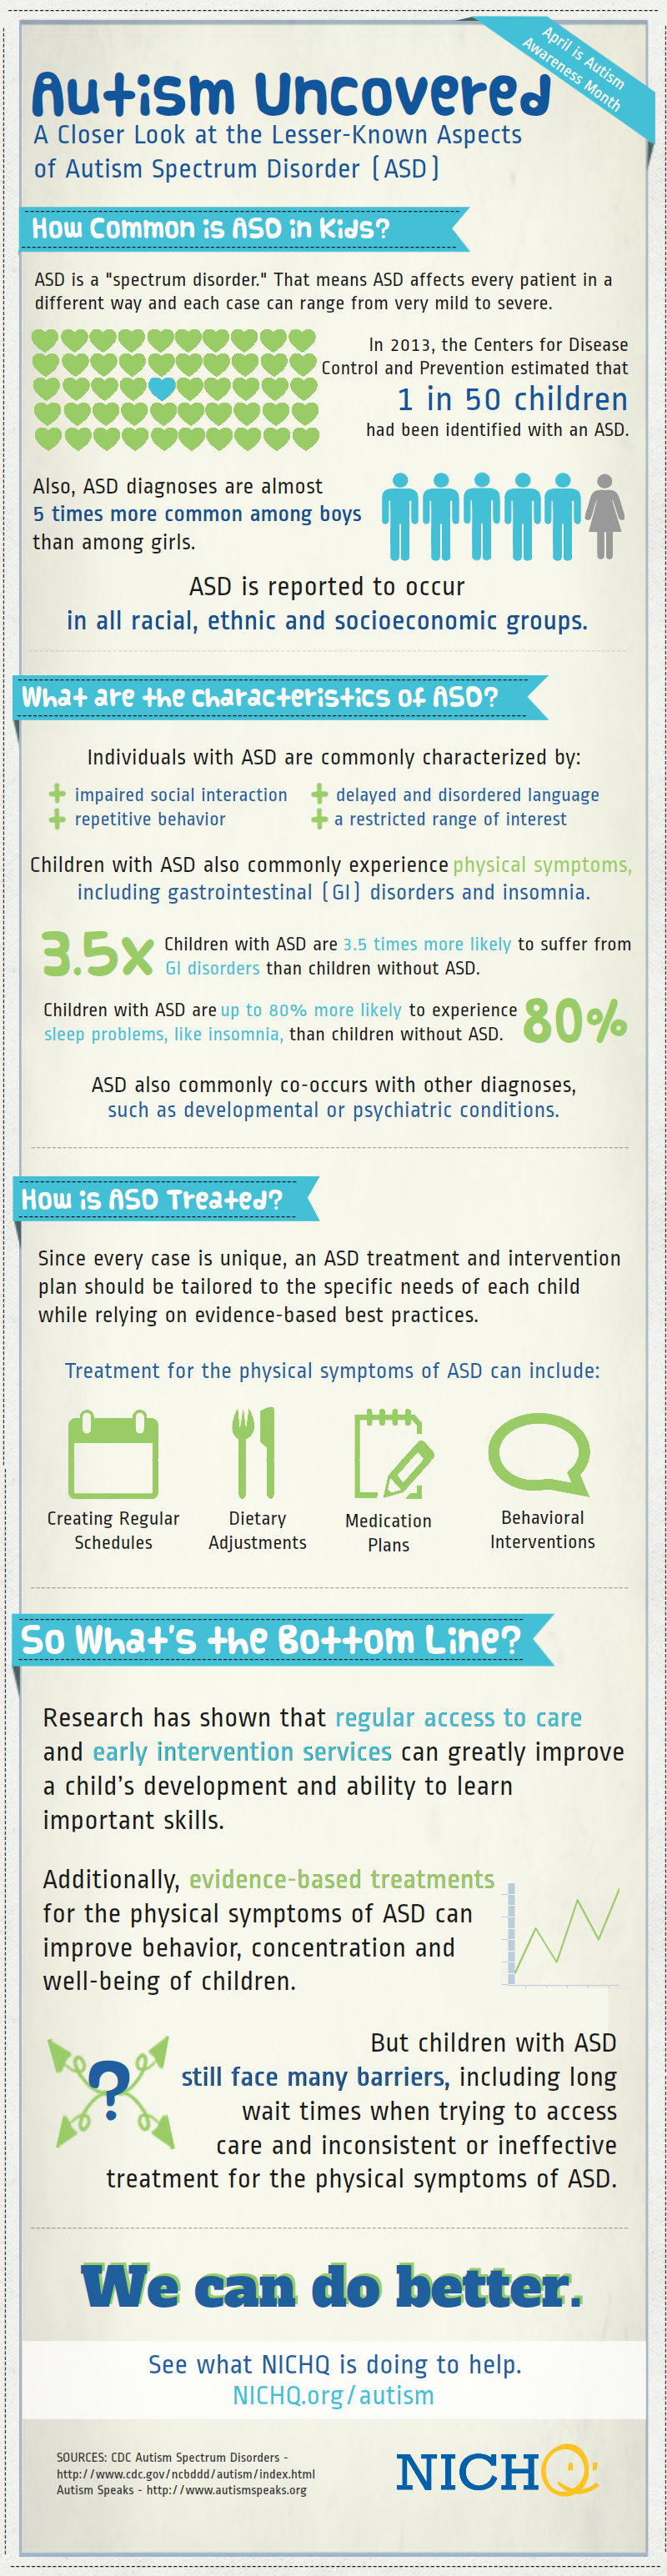 NEW INFOGRAPHIC from NICHQ Autism Uncovered A Closer look at